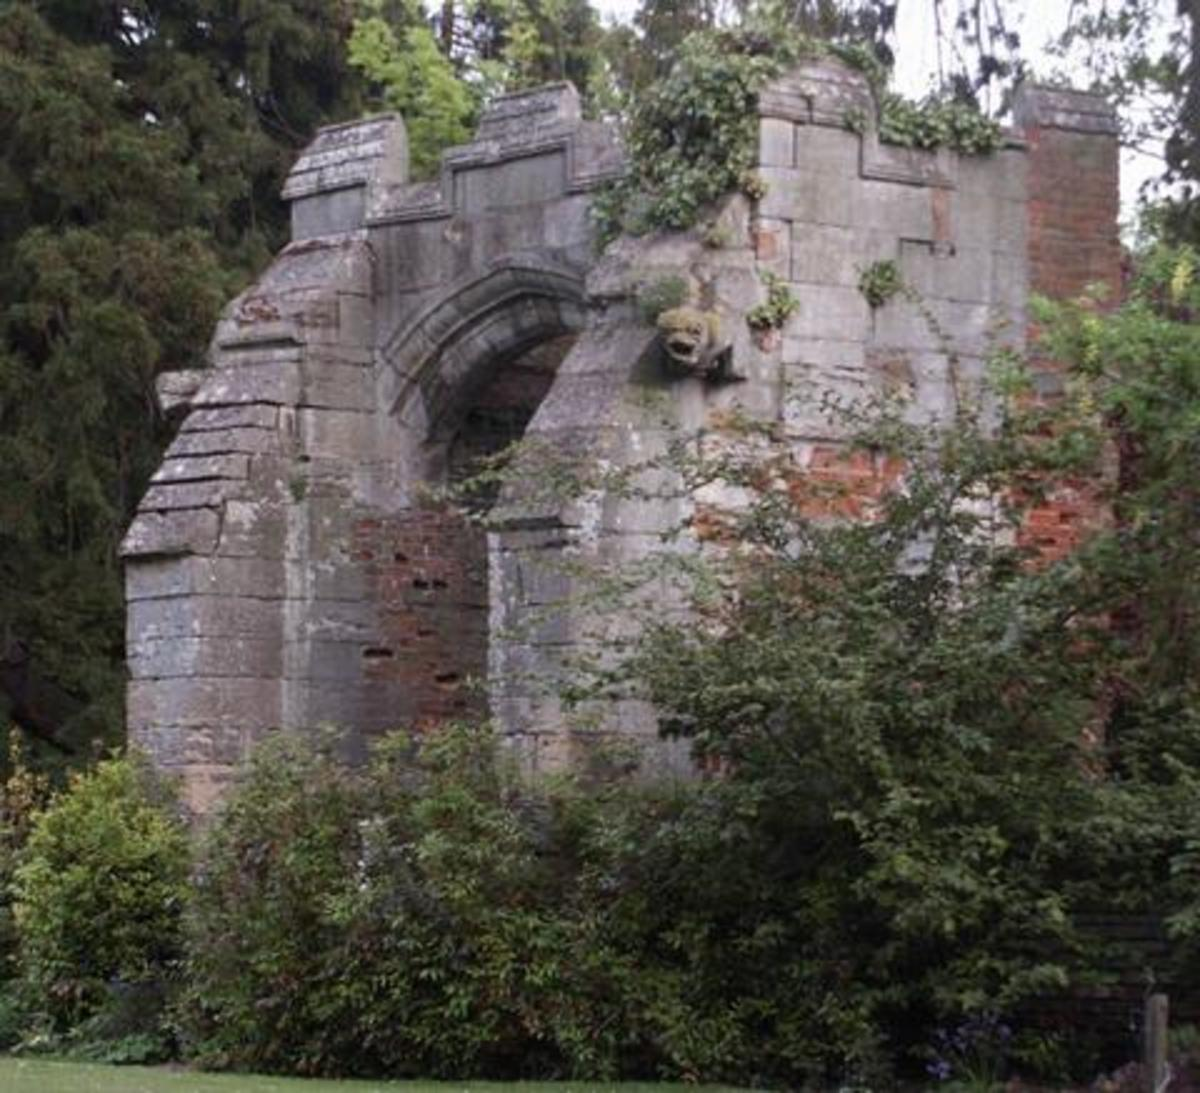 Kettlethorpe Manor, the larger of Hugh Swynford's estate in Lincolnshire.  This gate house is the surviving part of the house Katherine Swynford would have known.